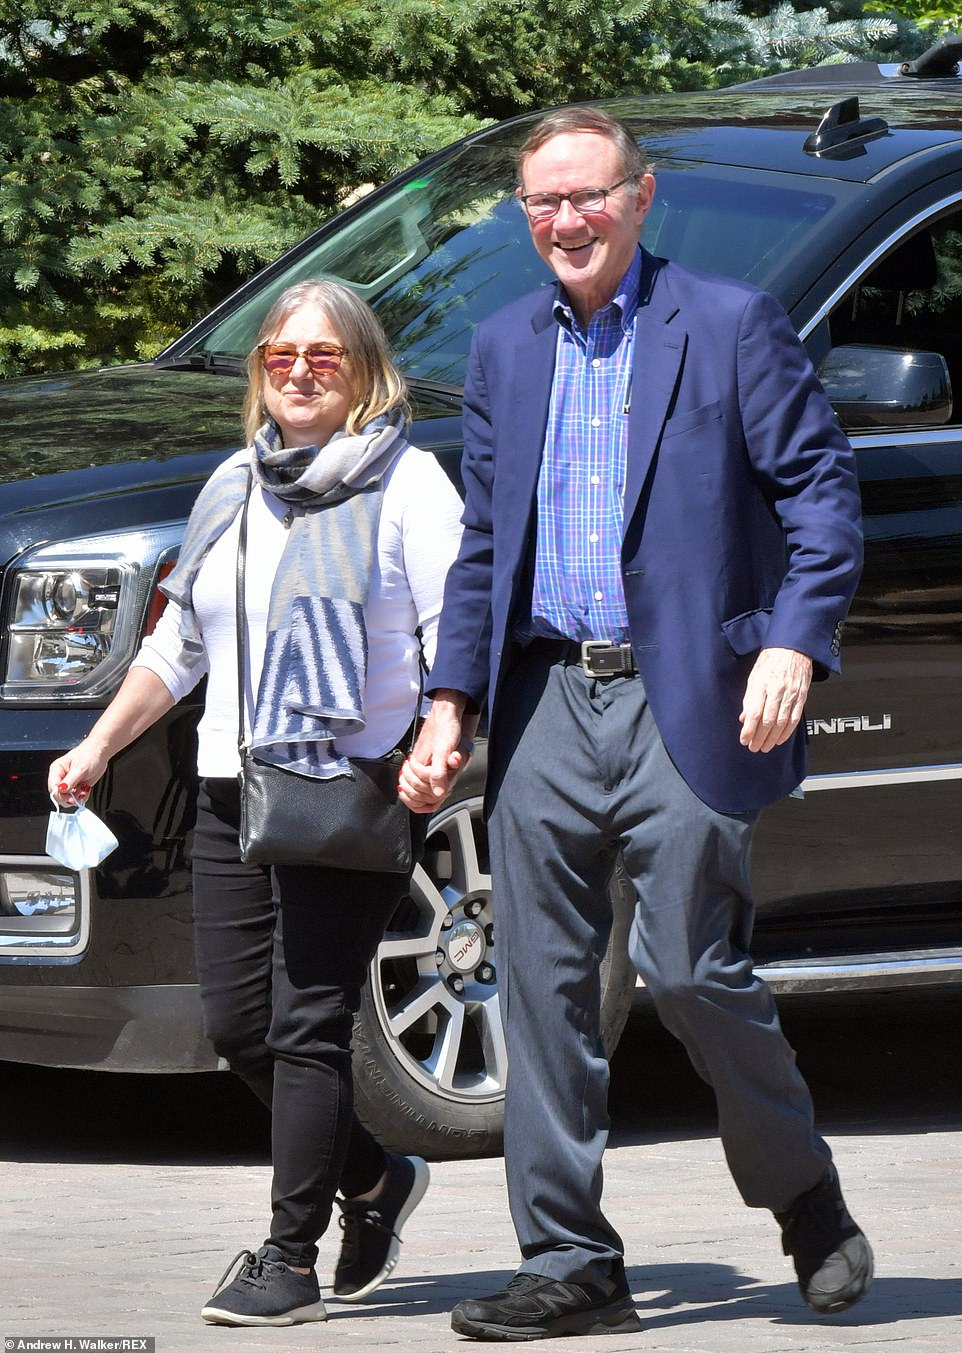 Former Washington Post Publisher Donald Graham with his wife and journalist Amanda Bennett arrived at the invite-only conference